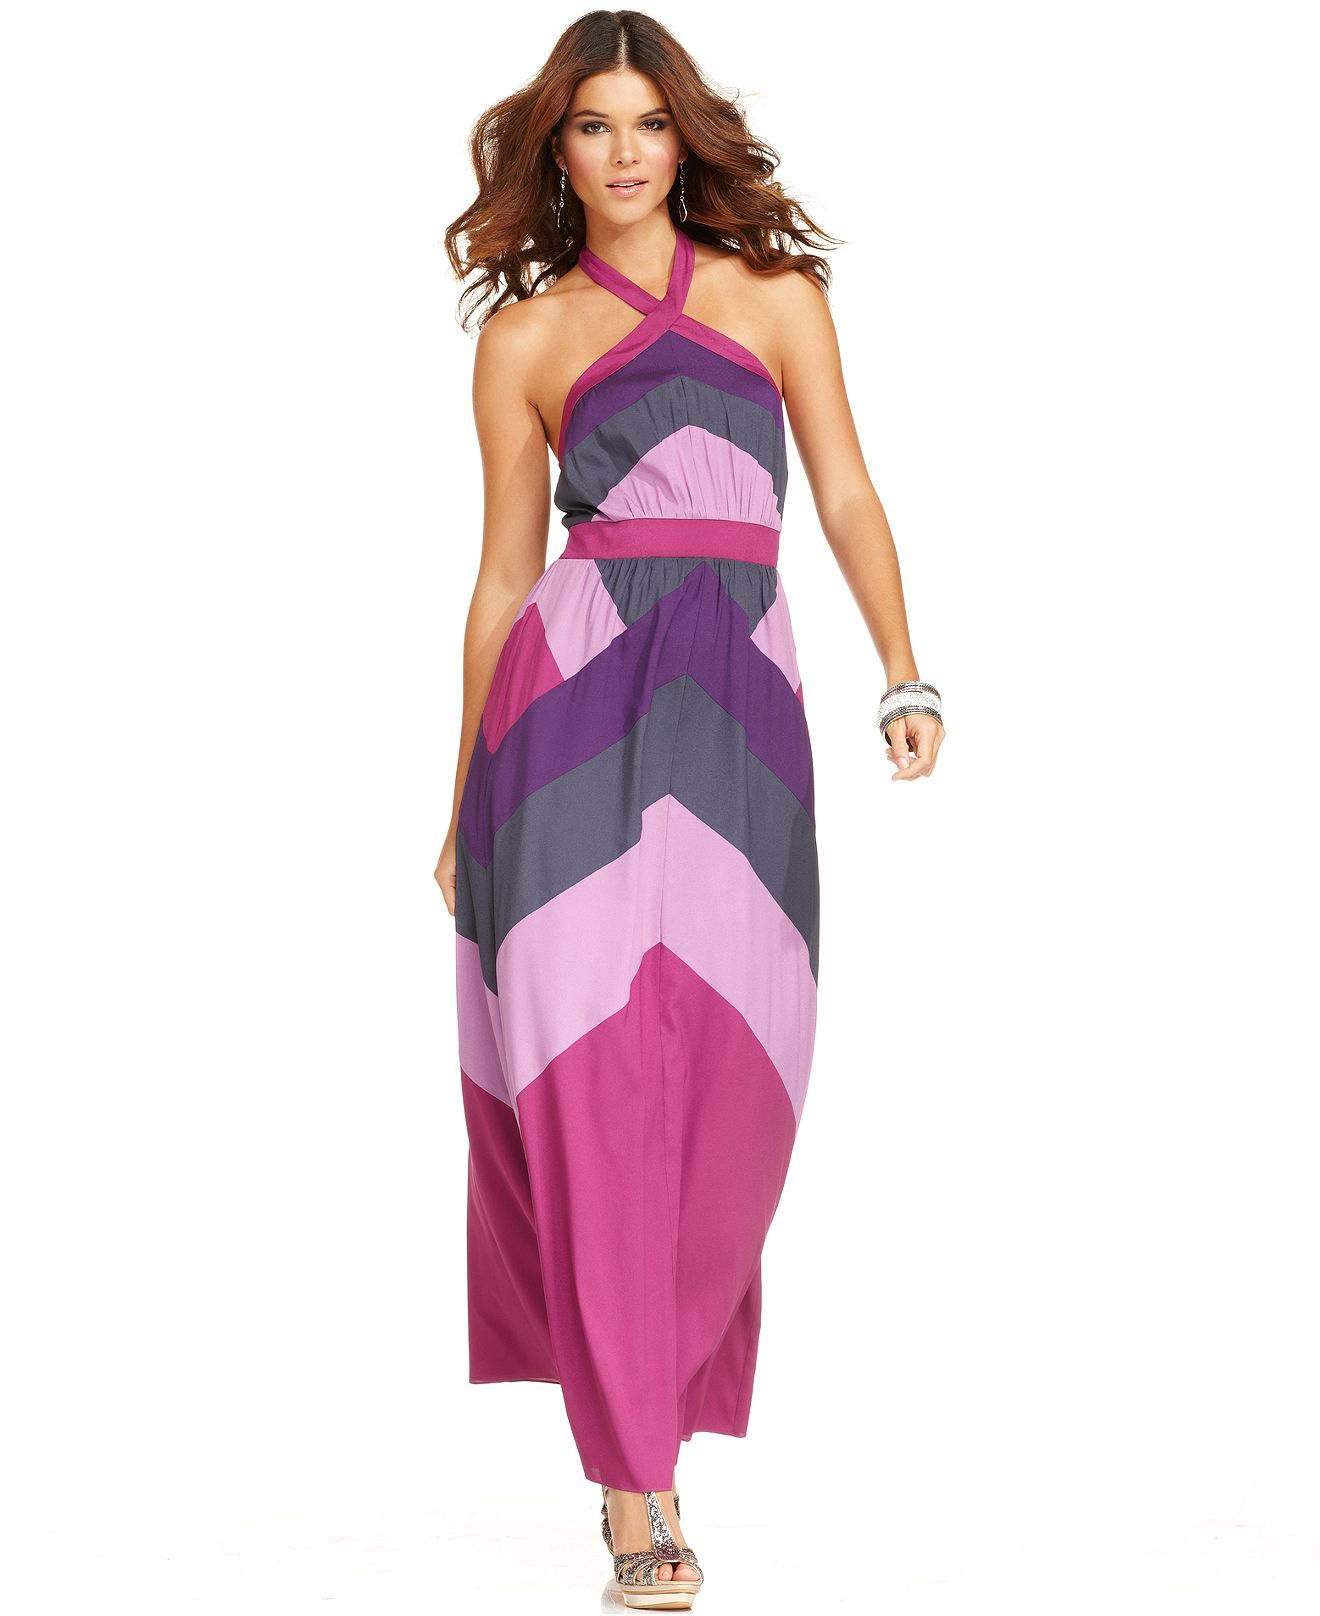 Jessica Simpson Dress, Sleeveless Chevron Colorblocked Halter Maxi ...